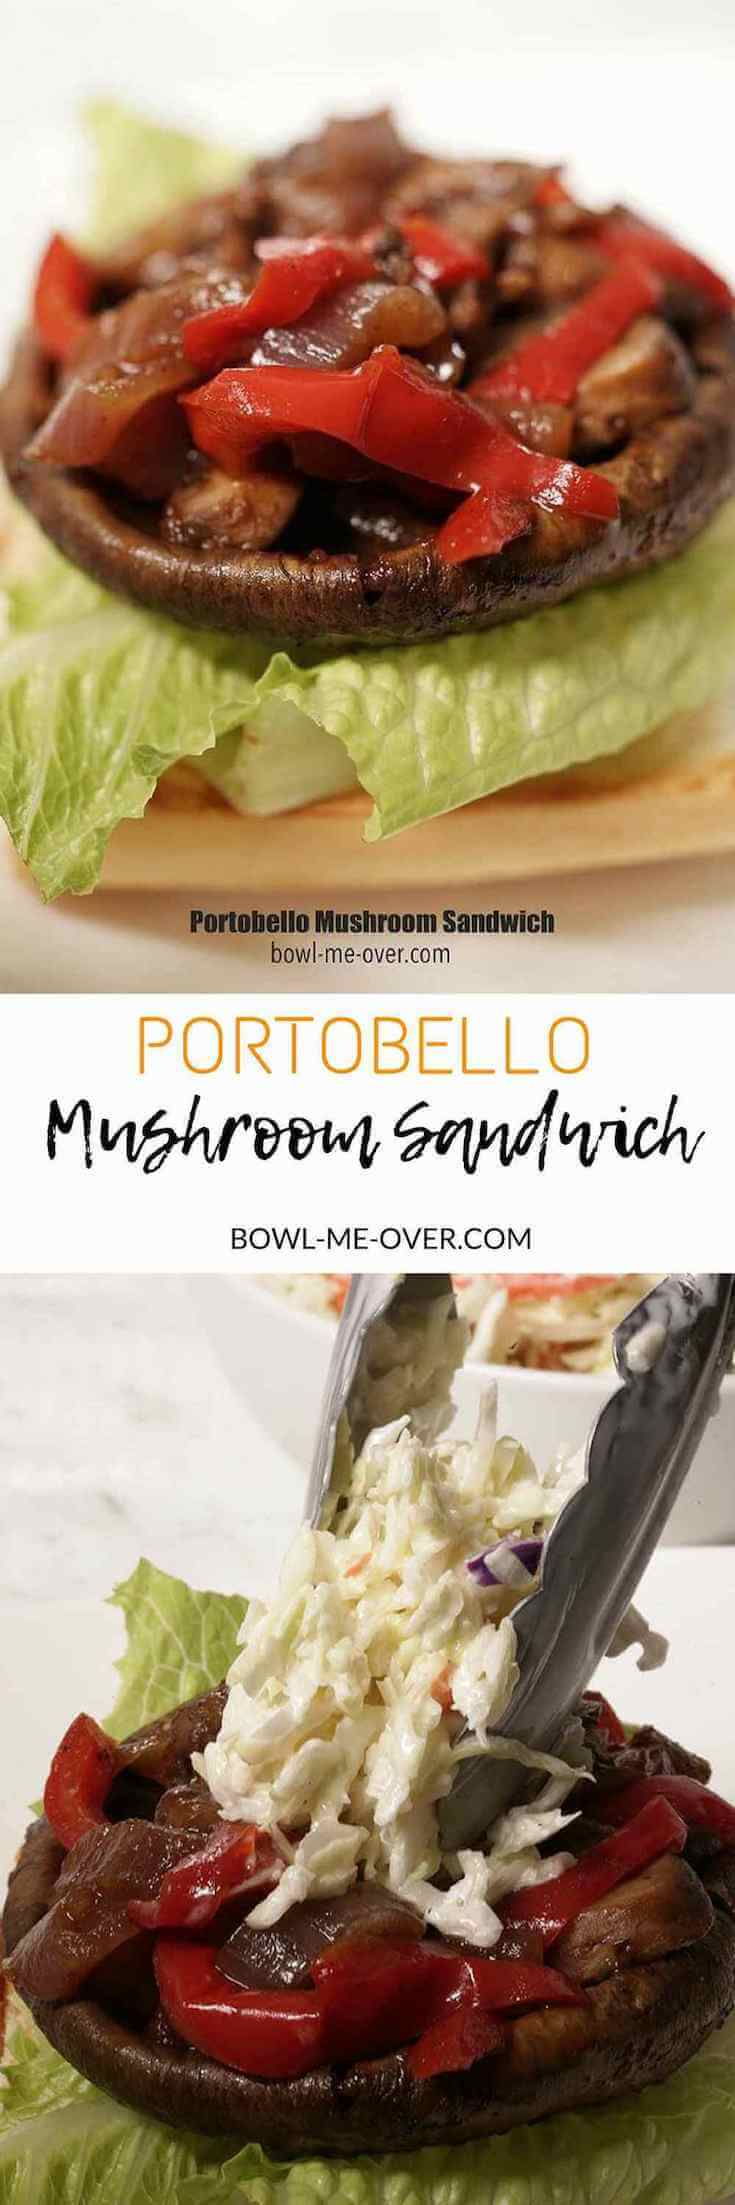 A burger bun topped with lettuce, portobello mushroom and bbq sauce. In the middle Portobello Mushroom Sandwich. The picture on the bottom is the portobello sandwich being topped with a dollop of coleslaw.